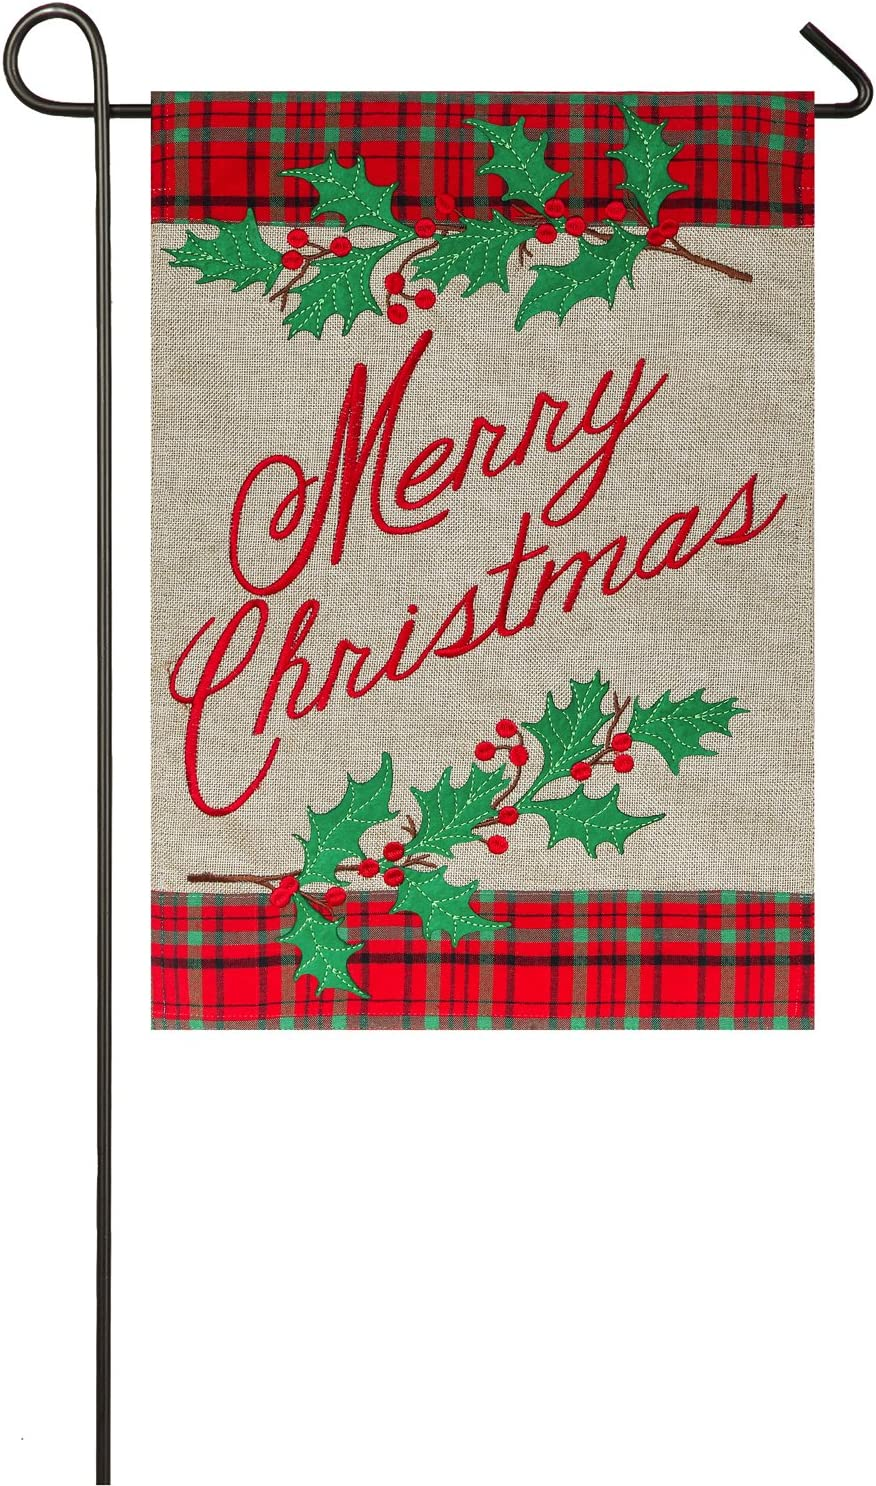 Evergreen Merry Christmas Plaid Outdoor Safe Double-Sided Burlap Garden Flag, 12.5 x 18 inches